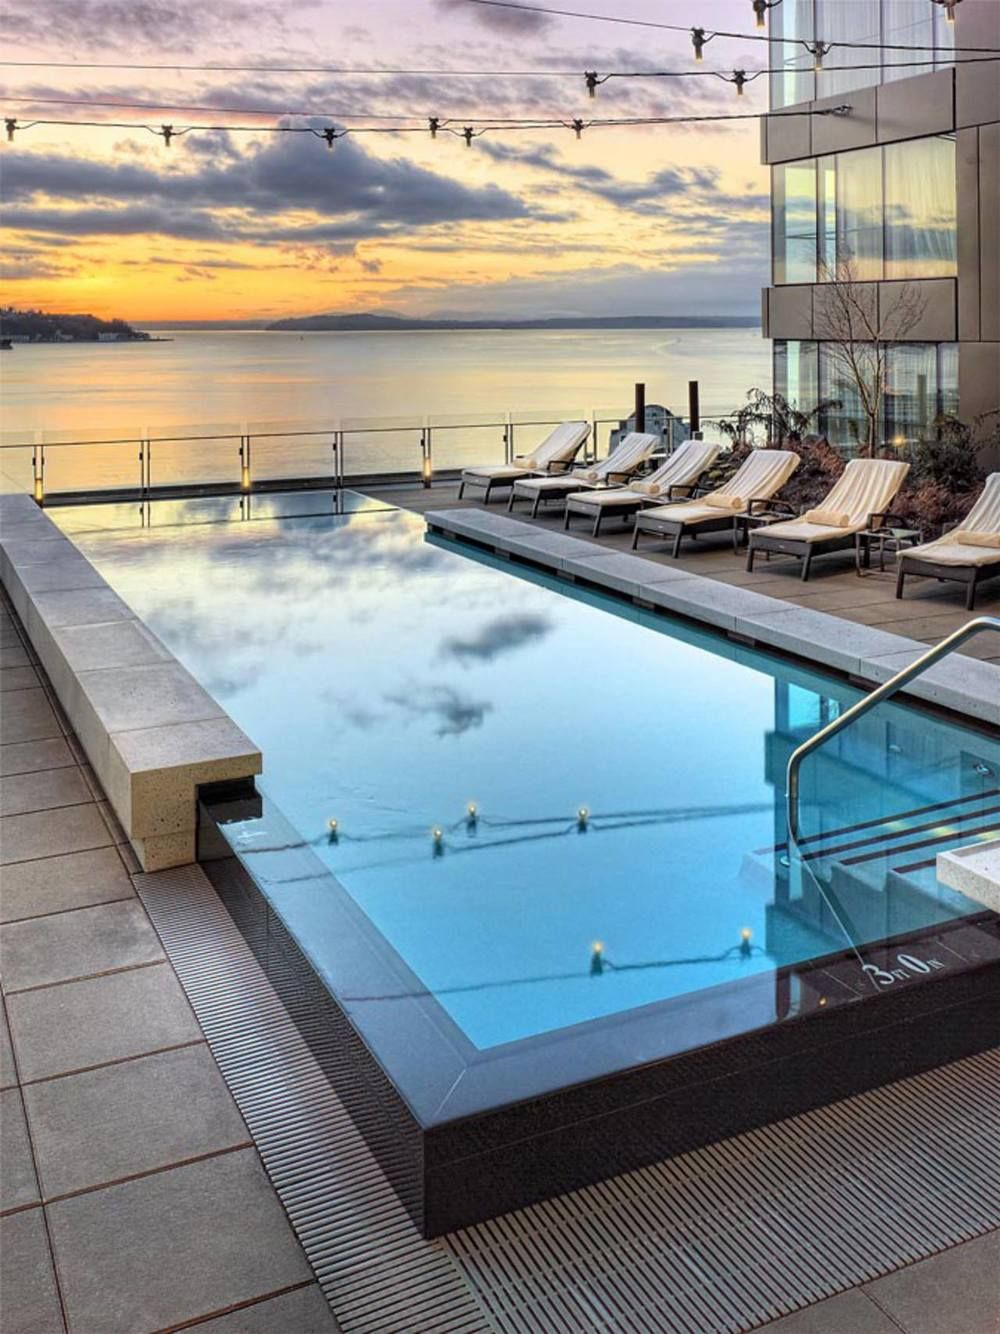 Infinity Pool And Rooftop Views Of Elliott Bay From The Four Seasons Seattle Seattle Hotels Seattle Hotels Downtown Four Seasons Seattle